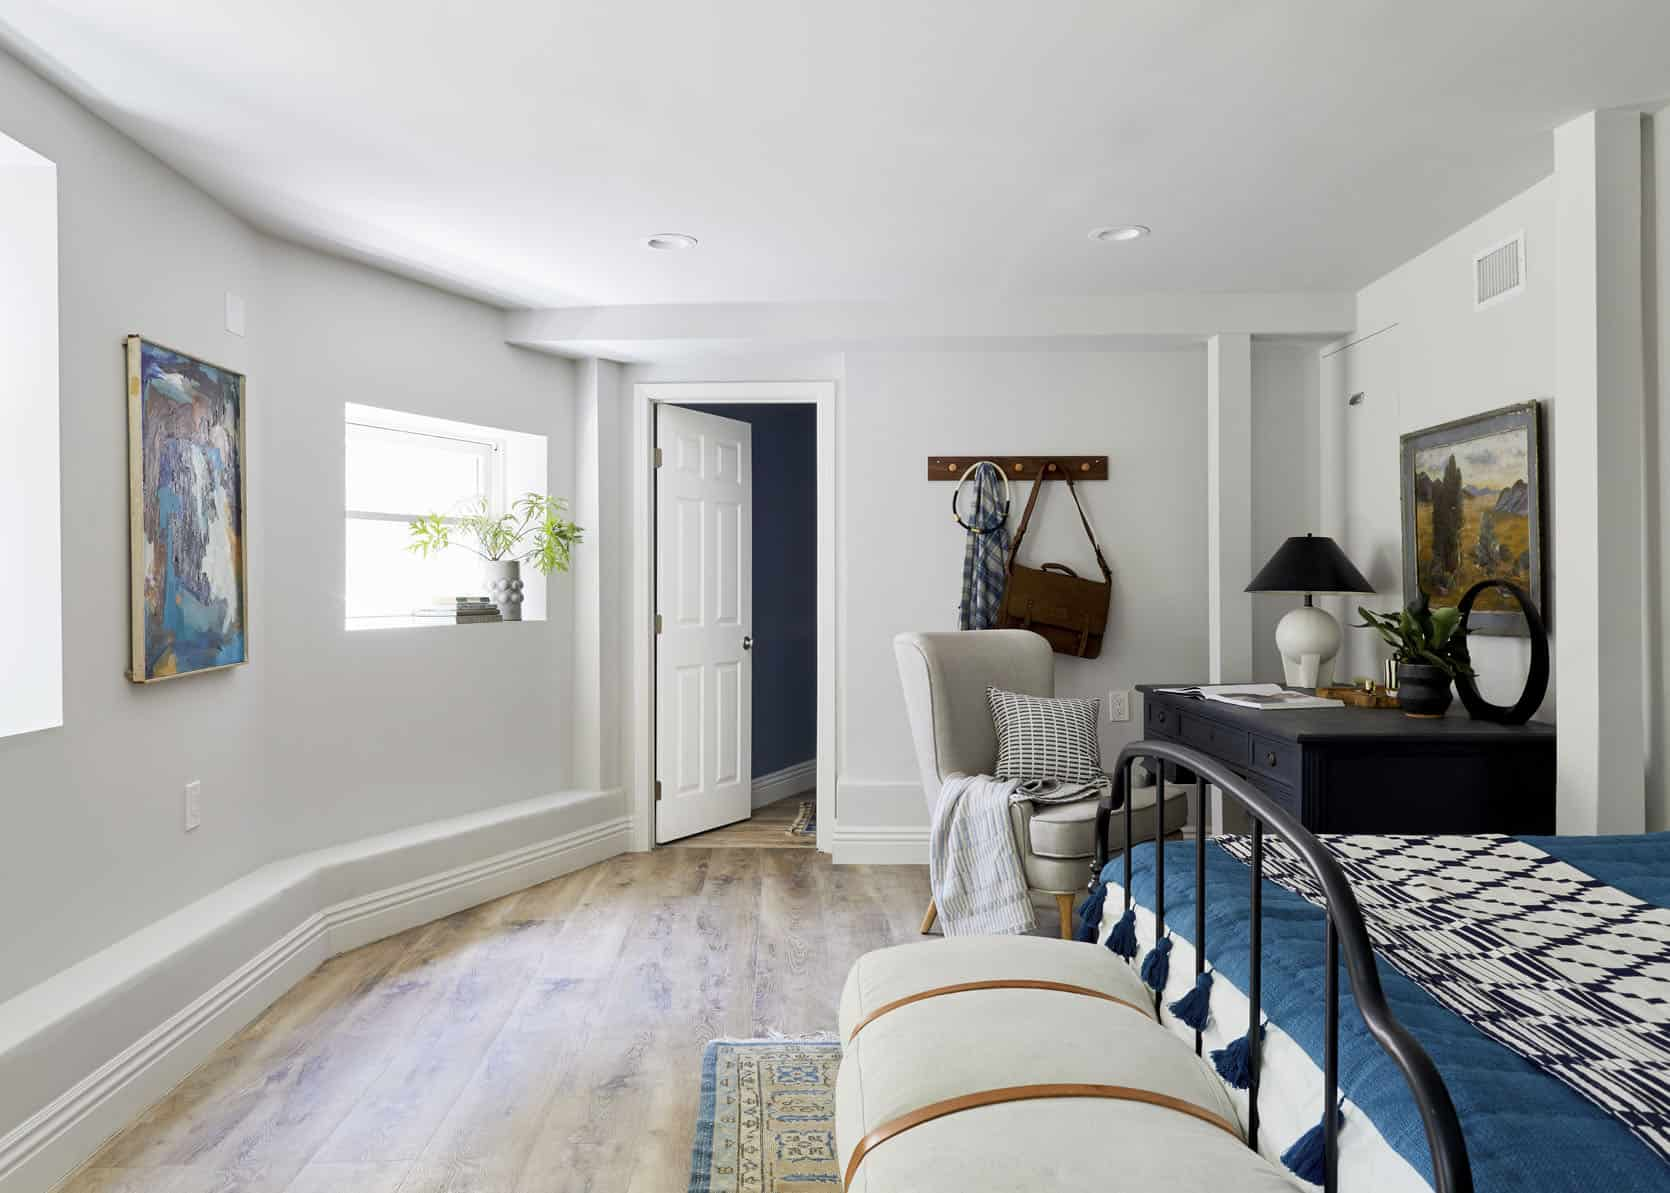 Our Guest Room/Office Basement Suite Reveal ... + How To ...